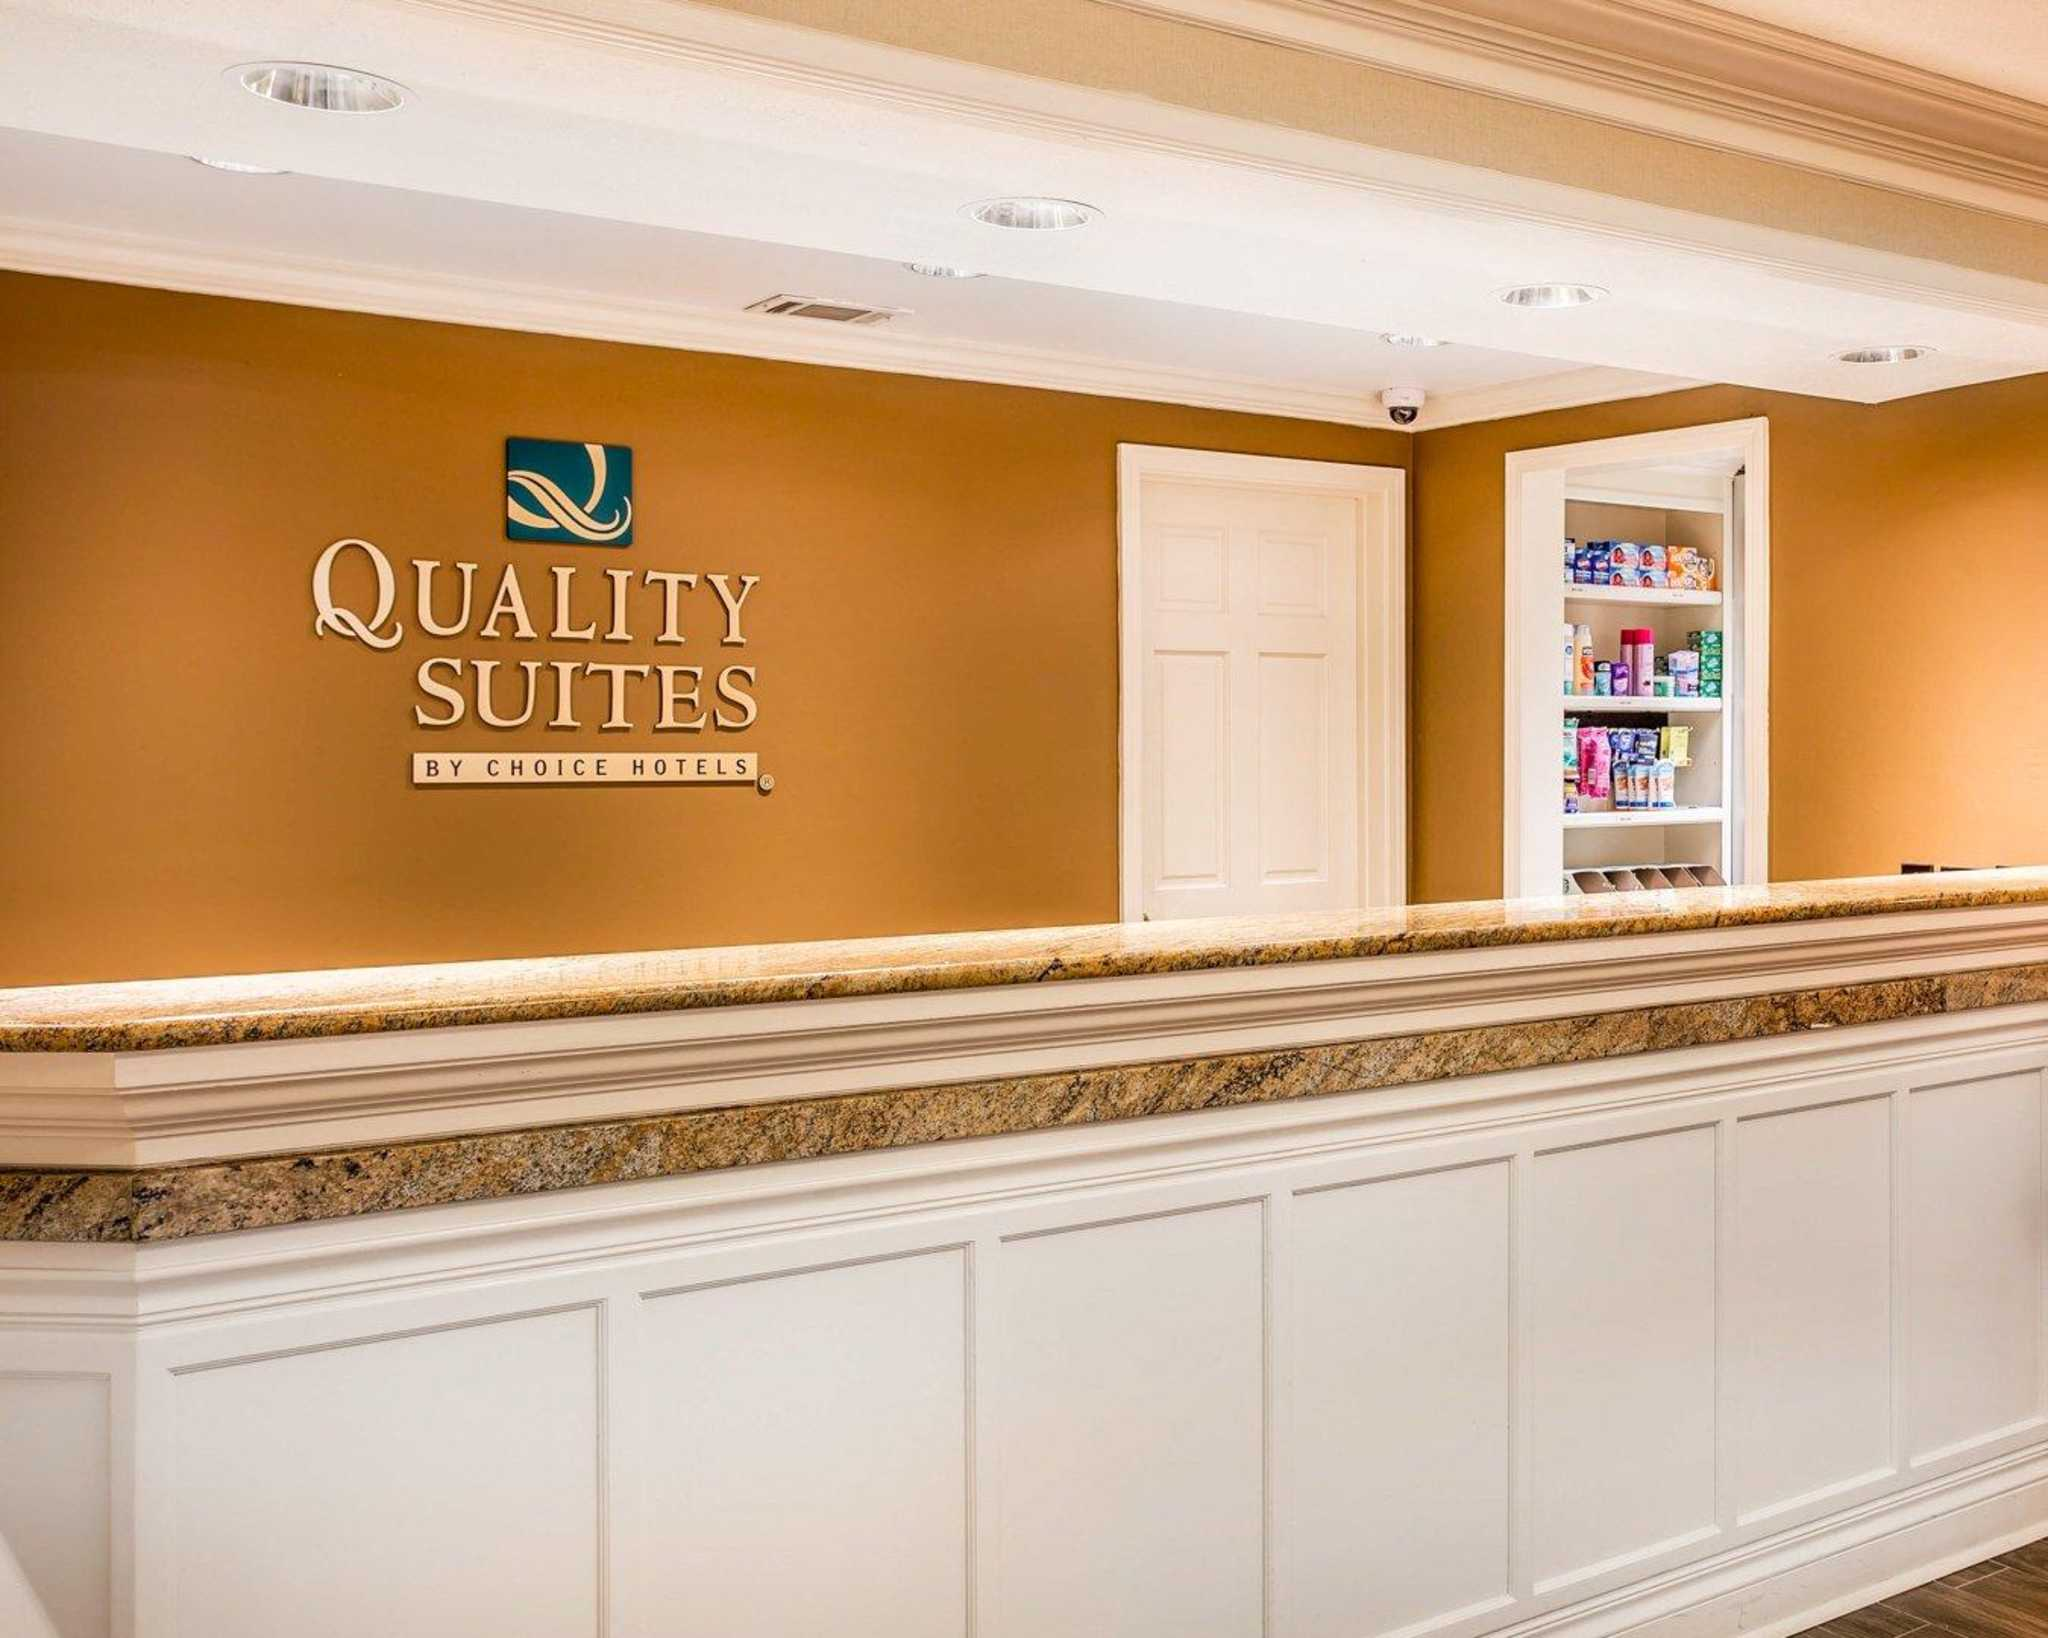 Quality Suites Buckhead Village image 3